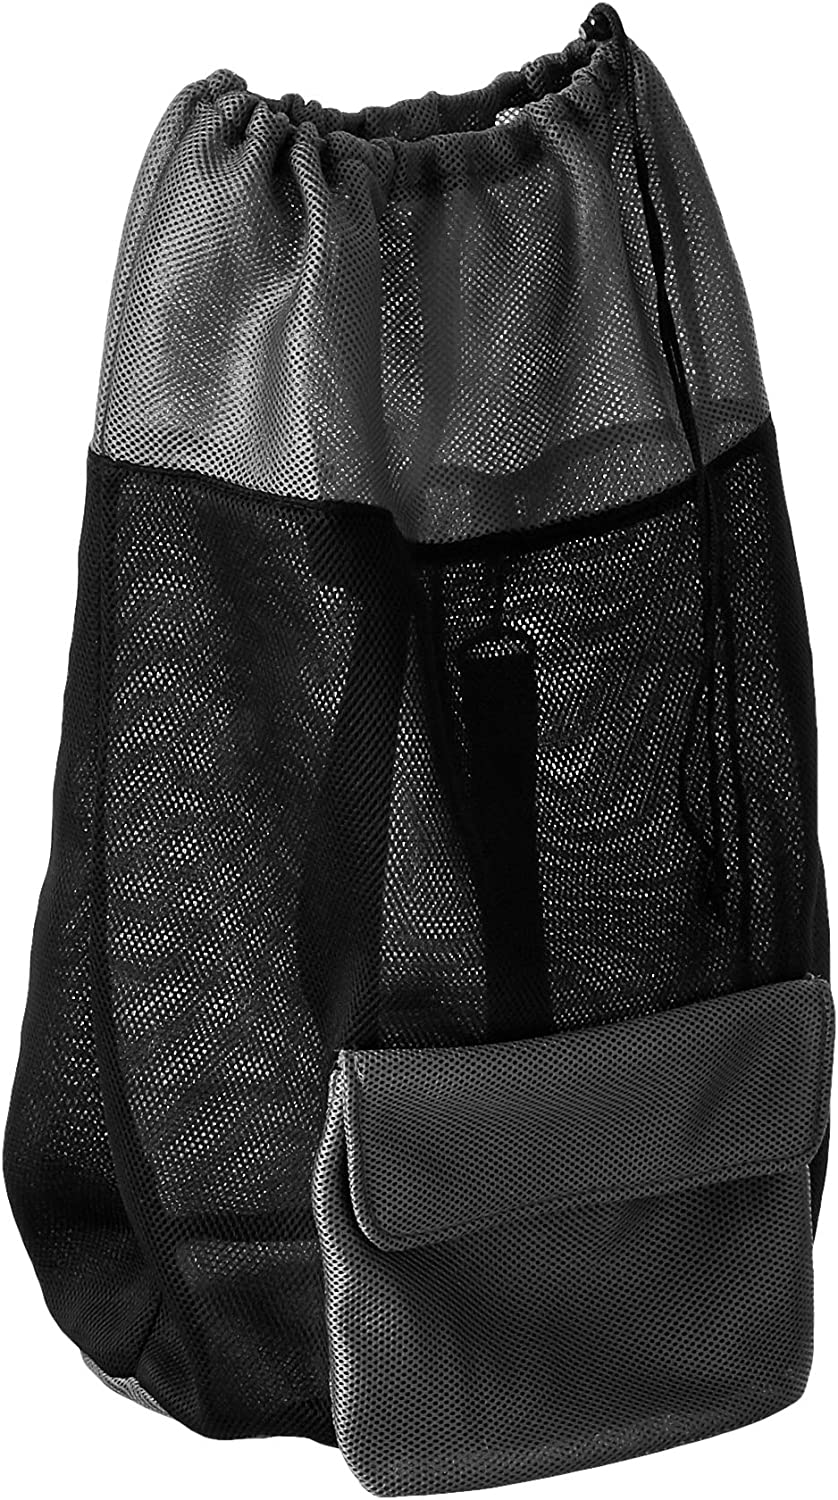 HOMZ Air, Black and Grey Large Mesh Backpack Laundry Bag